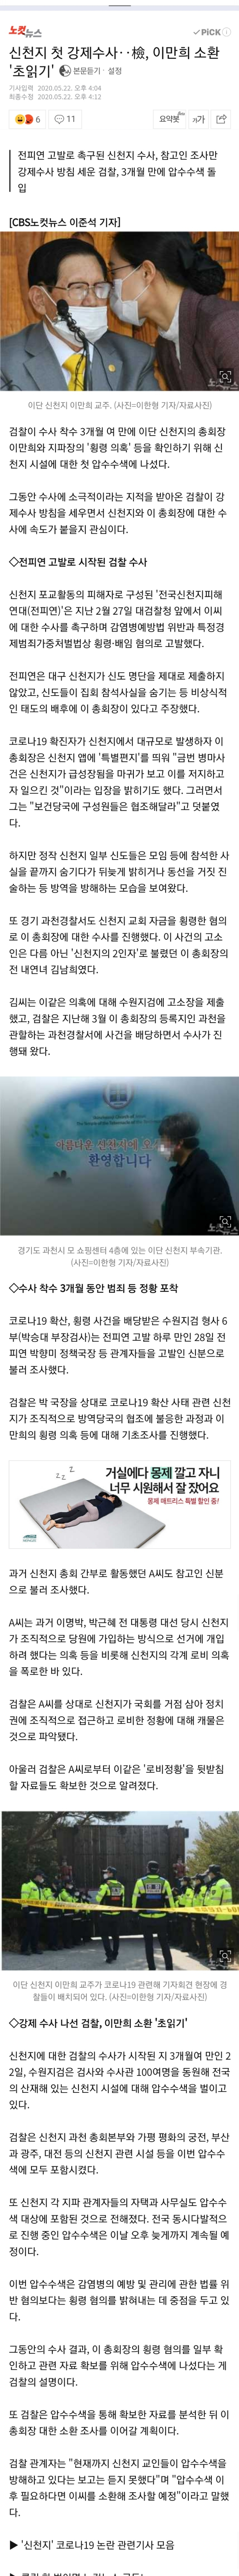 Screenshot_20200522-163736_NAVER.jpg